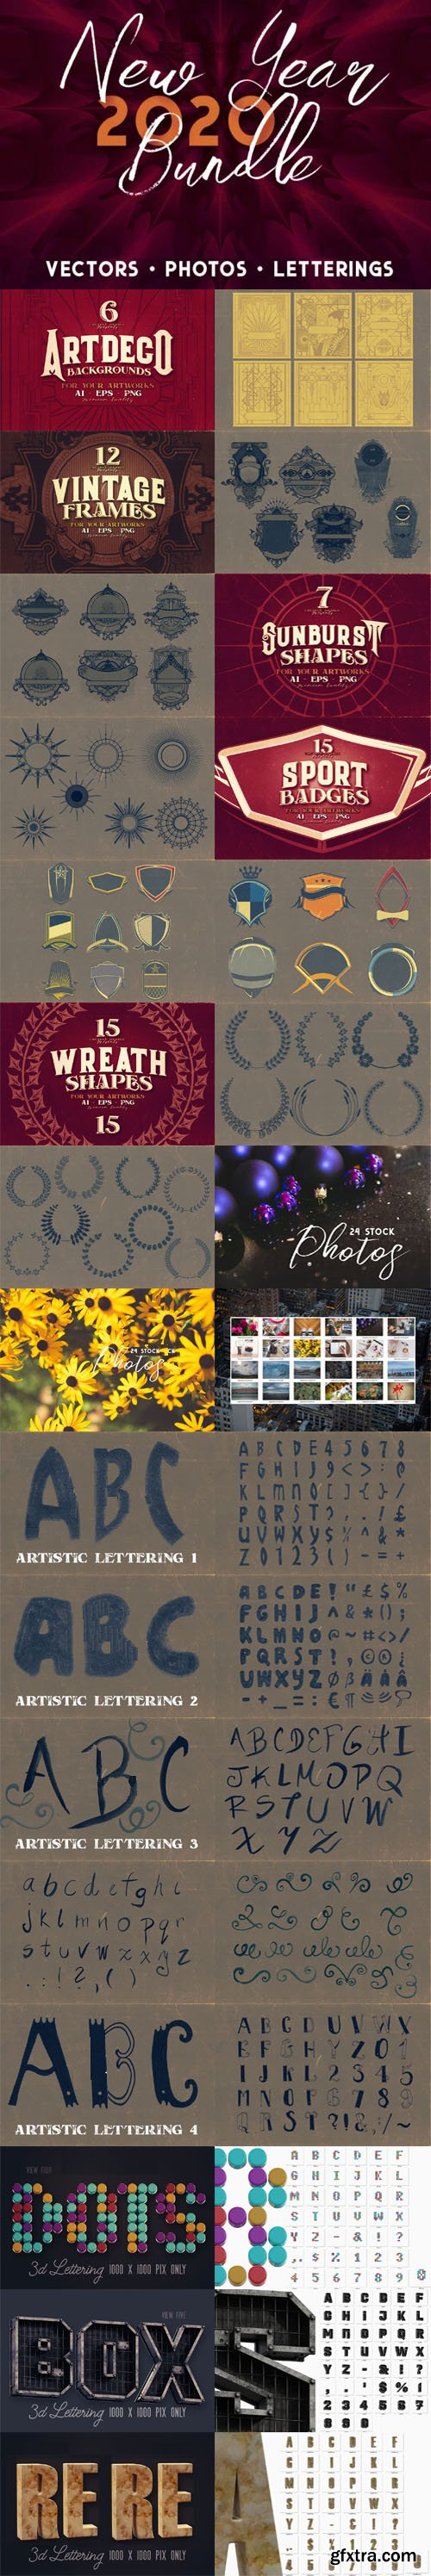 New Year 2020 Bundle [Vectors - Photos - Letterings]